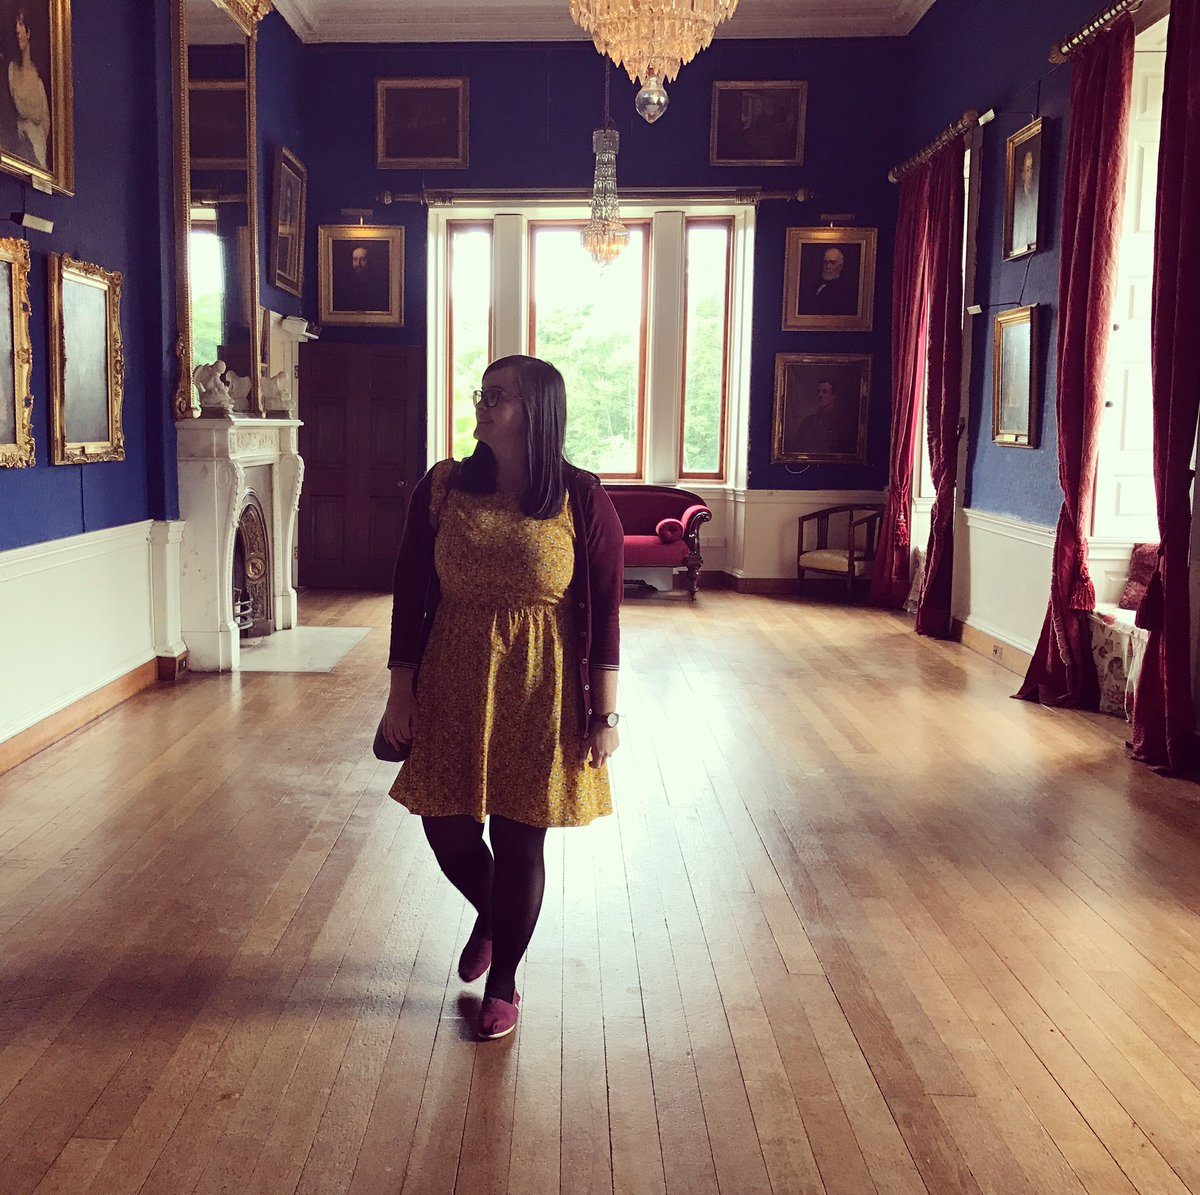 Fab afternoon exploring @WestportHouse! Loved it both inside and out! #westport250 #travelblogger <br>http://pic.twitter.com/YkDcOLsdXP